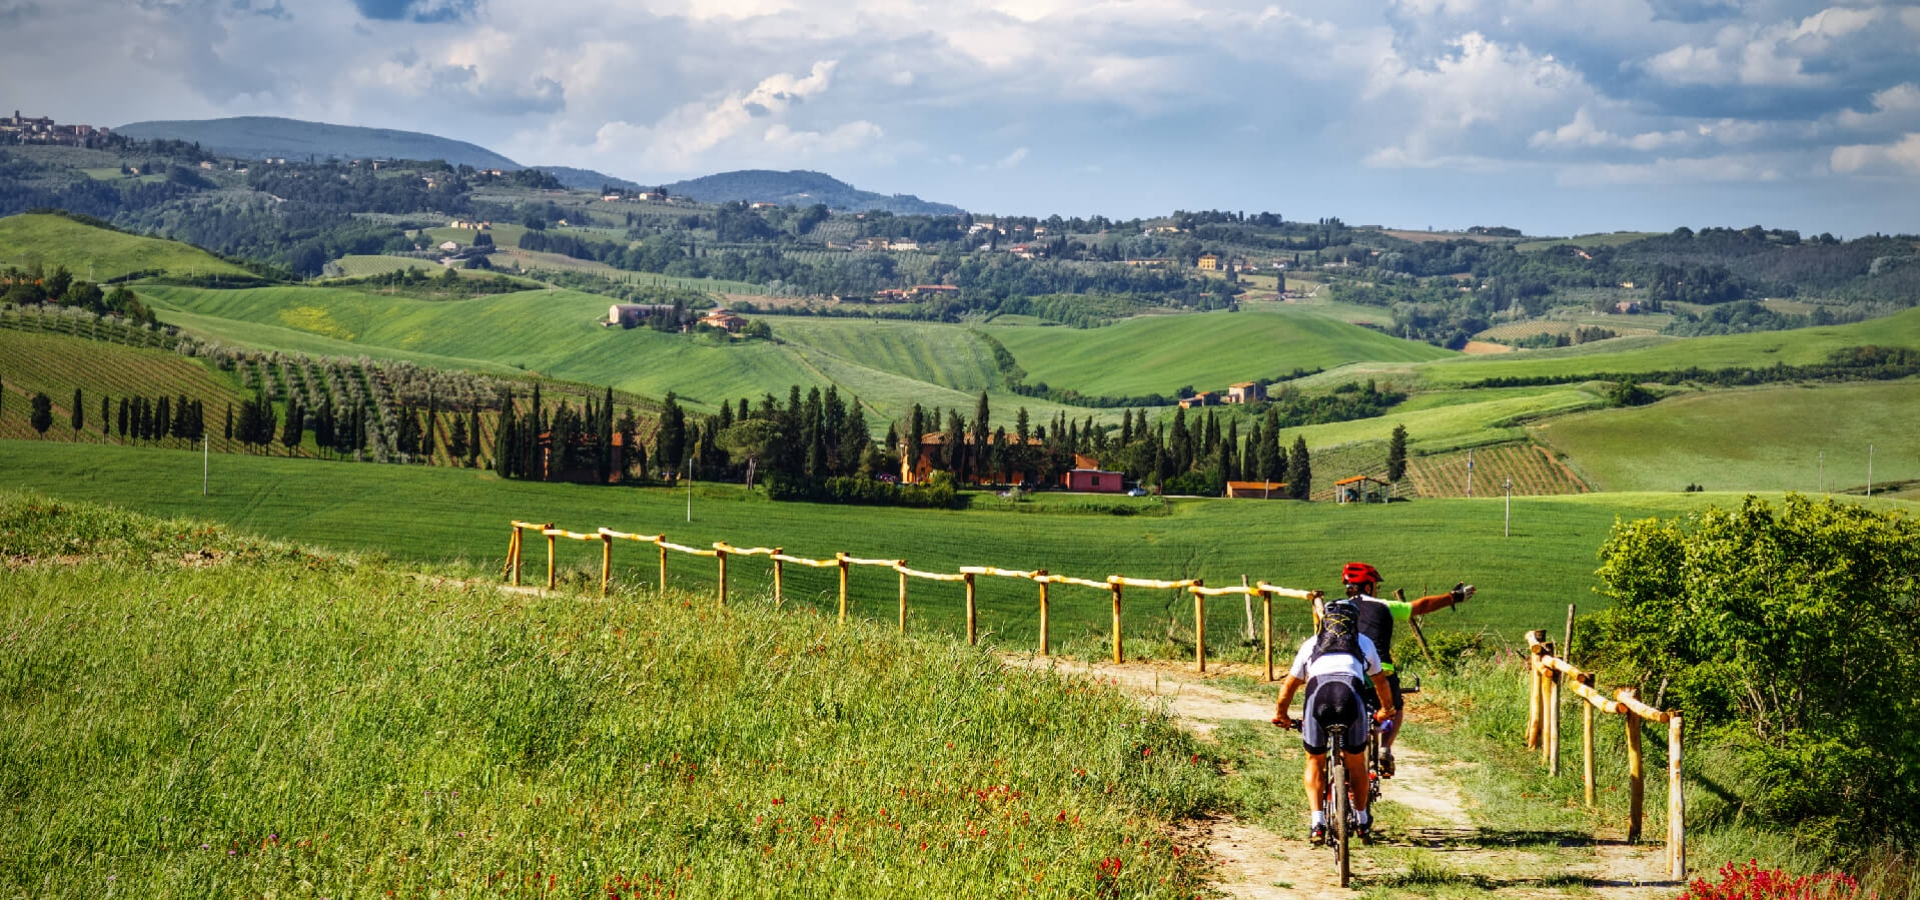 <h2>CYCLING TOURISM AND NATURE ITINERARIES</h2><p>Plenty of outdoor activities for nature lovers</p>